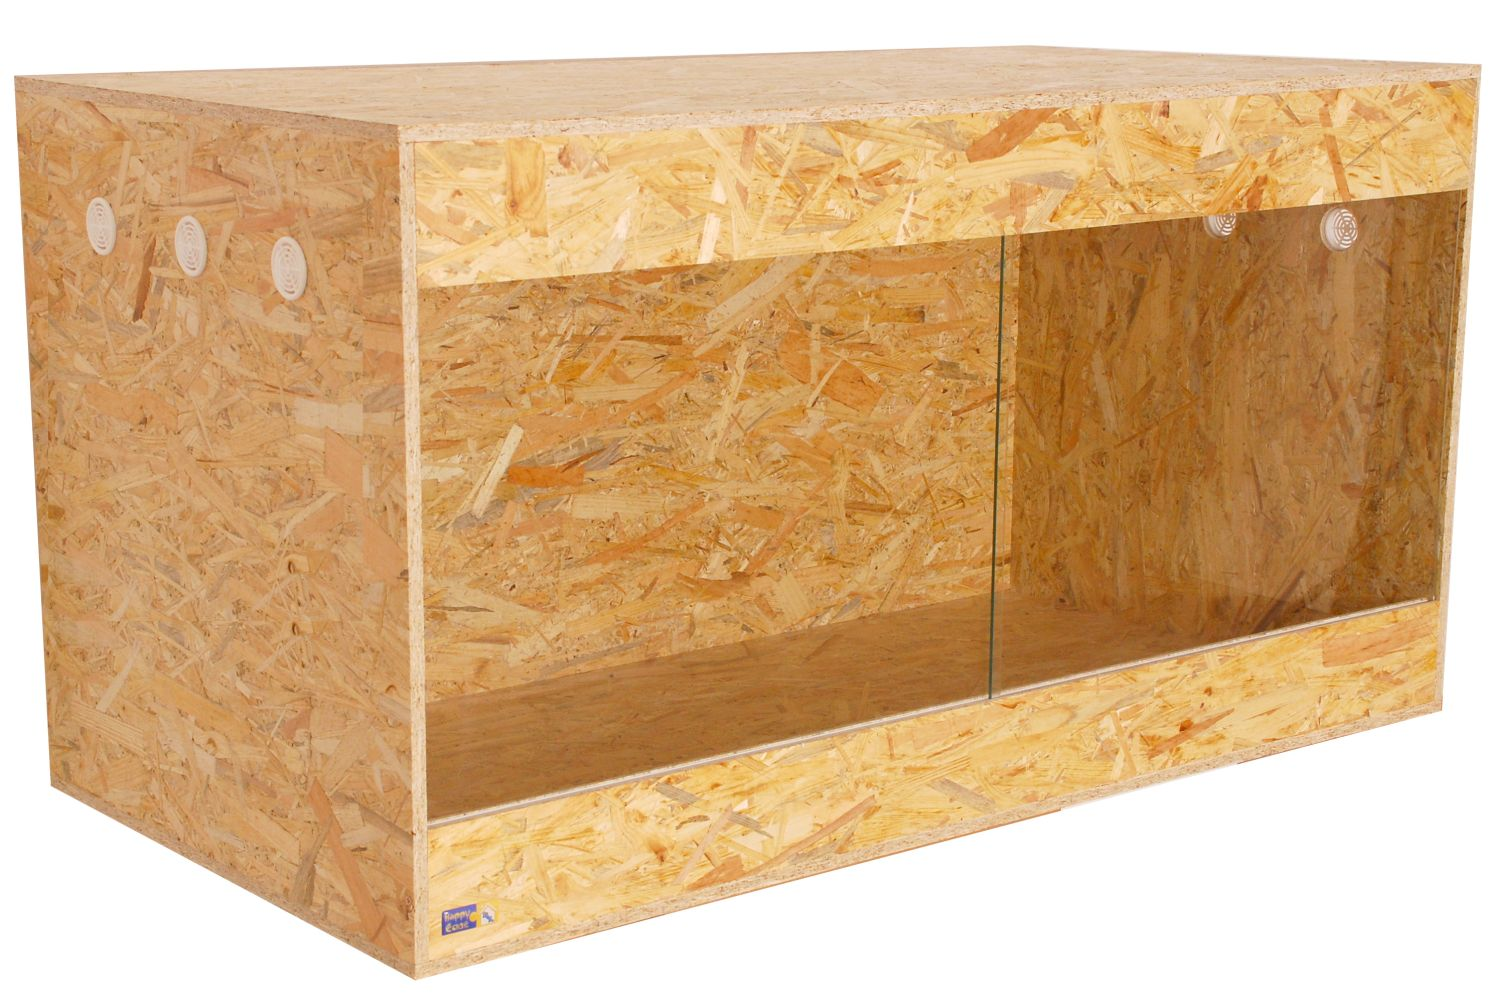 osb terrarium 120x60x60 cm kaufen bei md terraristik. Black Bedroom Furniture Sets. Home Design Ideas